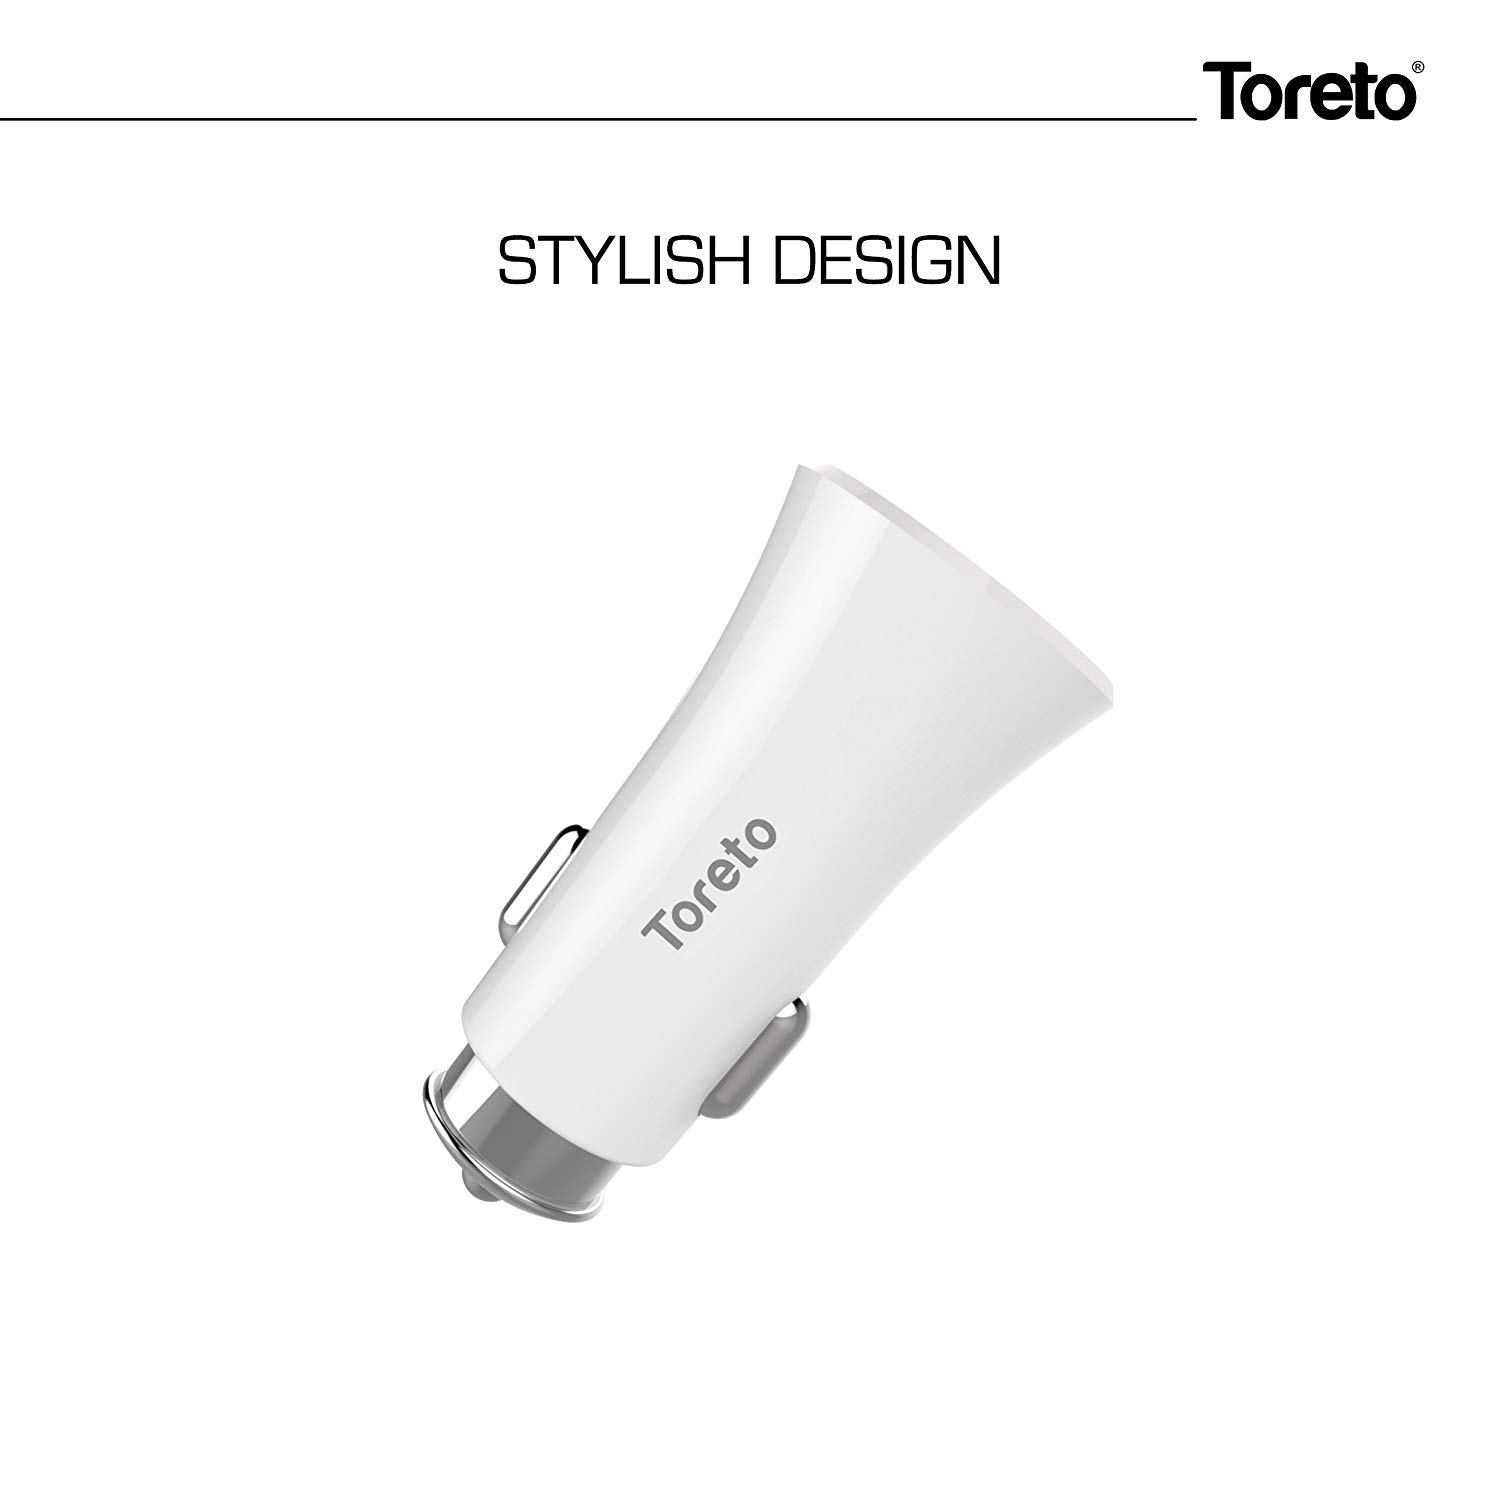 Toreto Smart Charge 3.4A Dual Port(USB,Type C) Car Charger for All Smartphones - Black,White-TOR 414